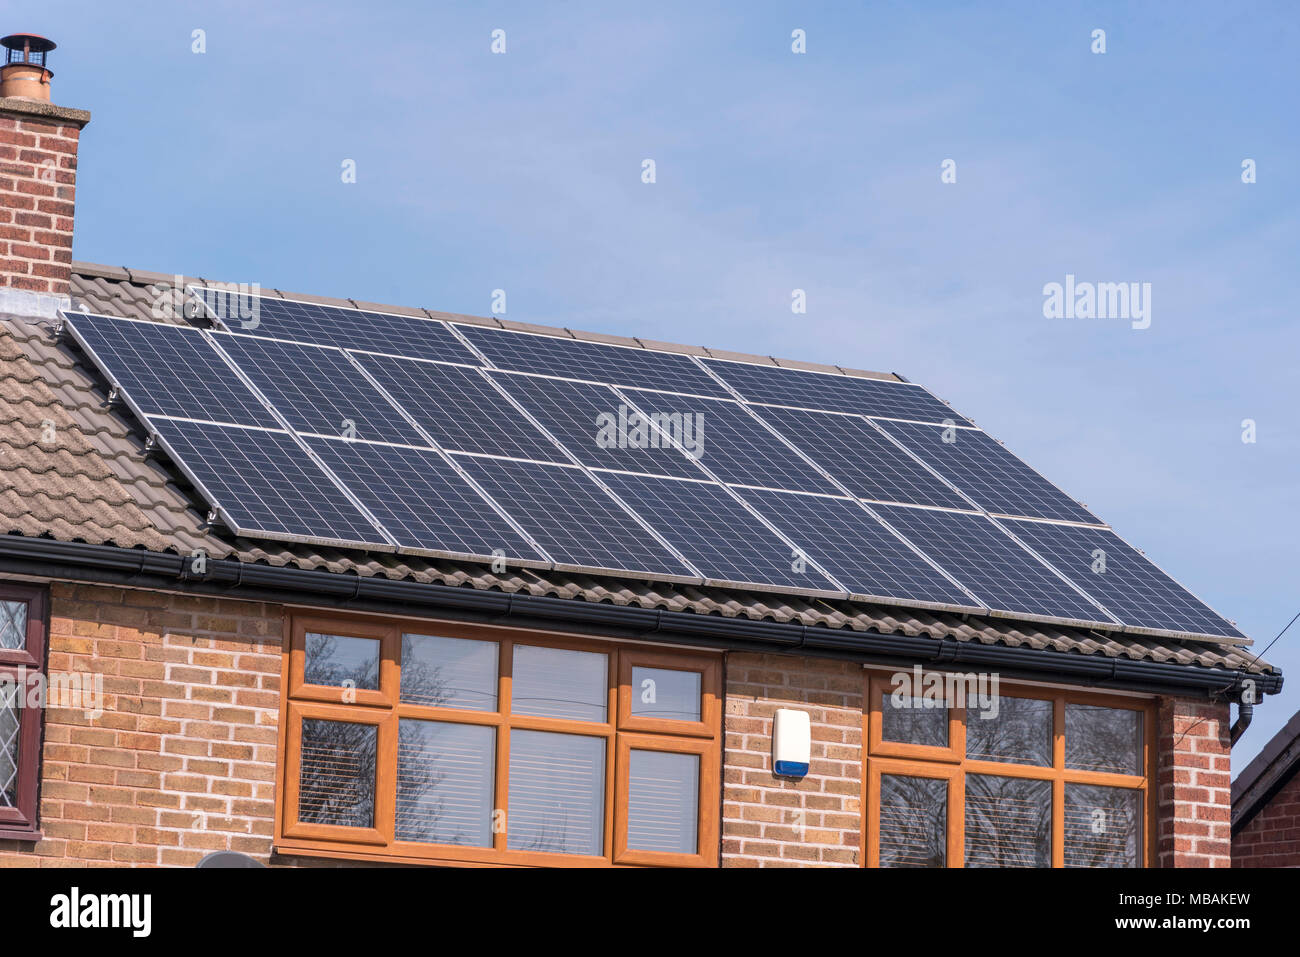 Solar roof panels on house. - Stock Image